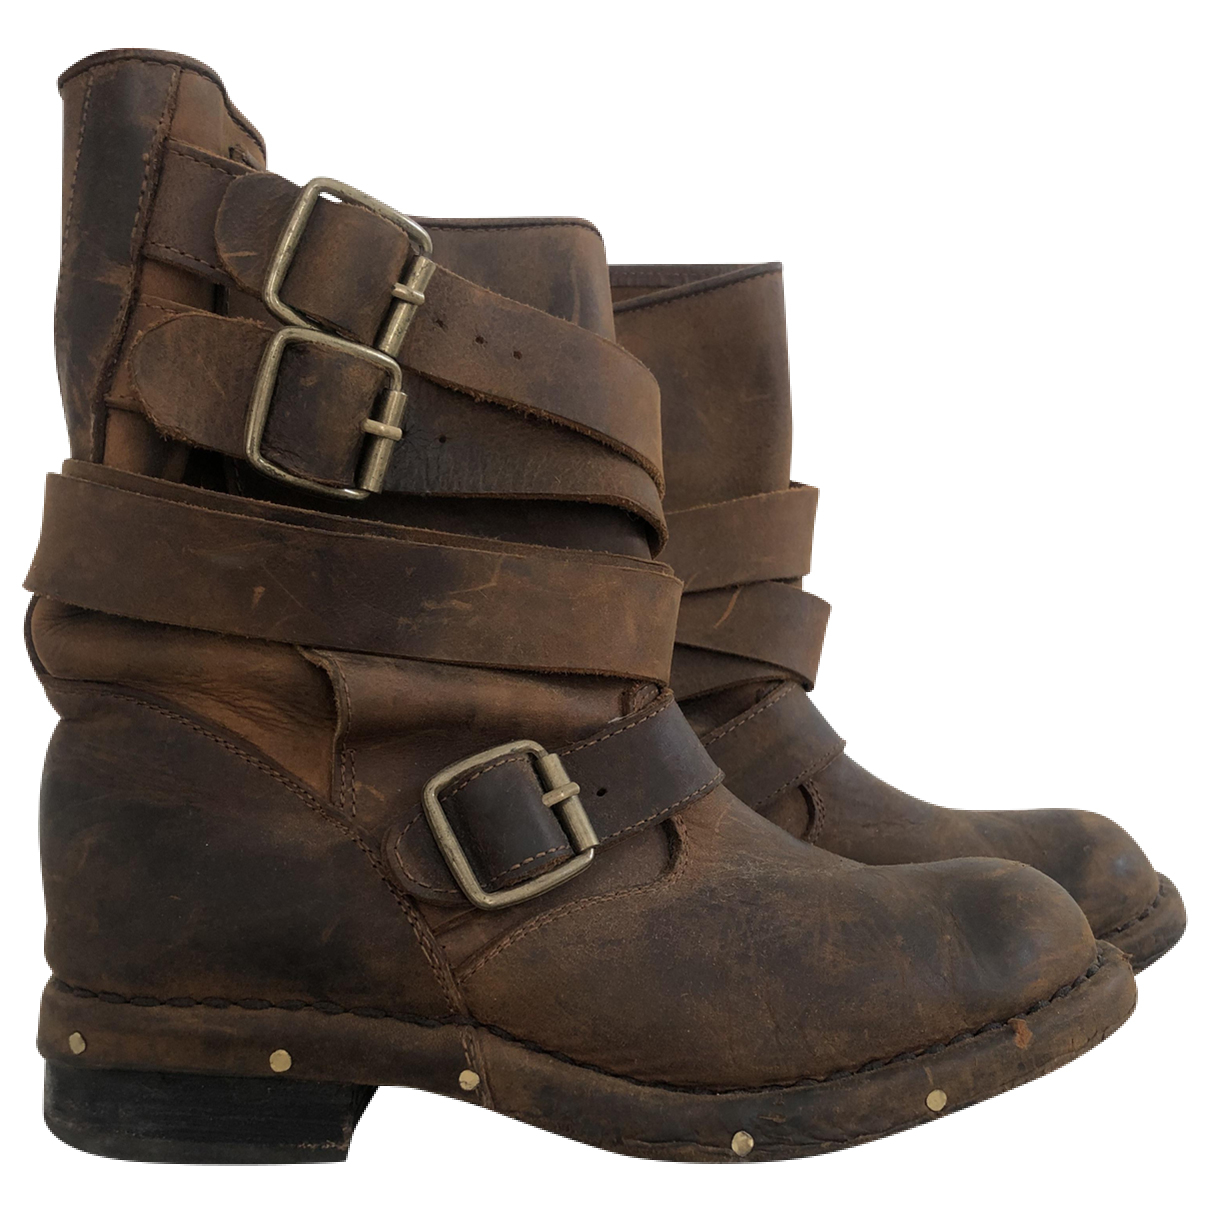 Jeffrey Campbell N Brown Leather Ankle boots for Women 38 EU